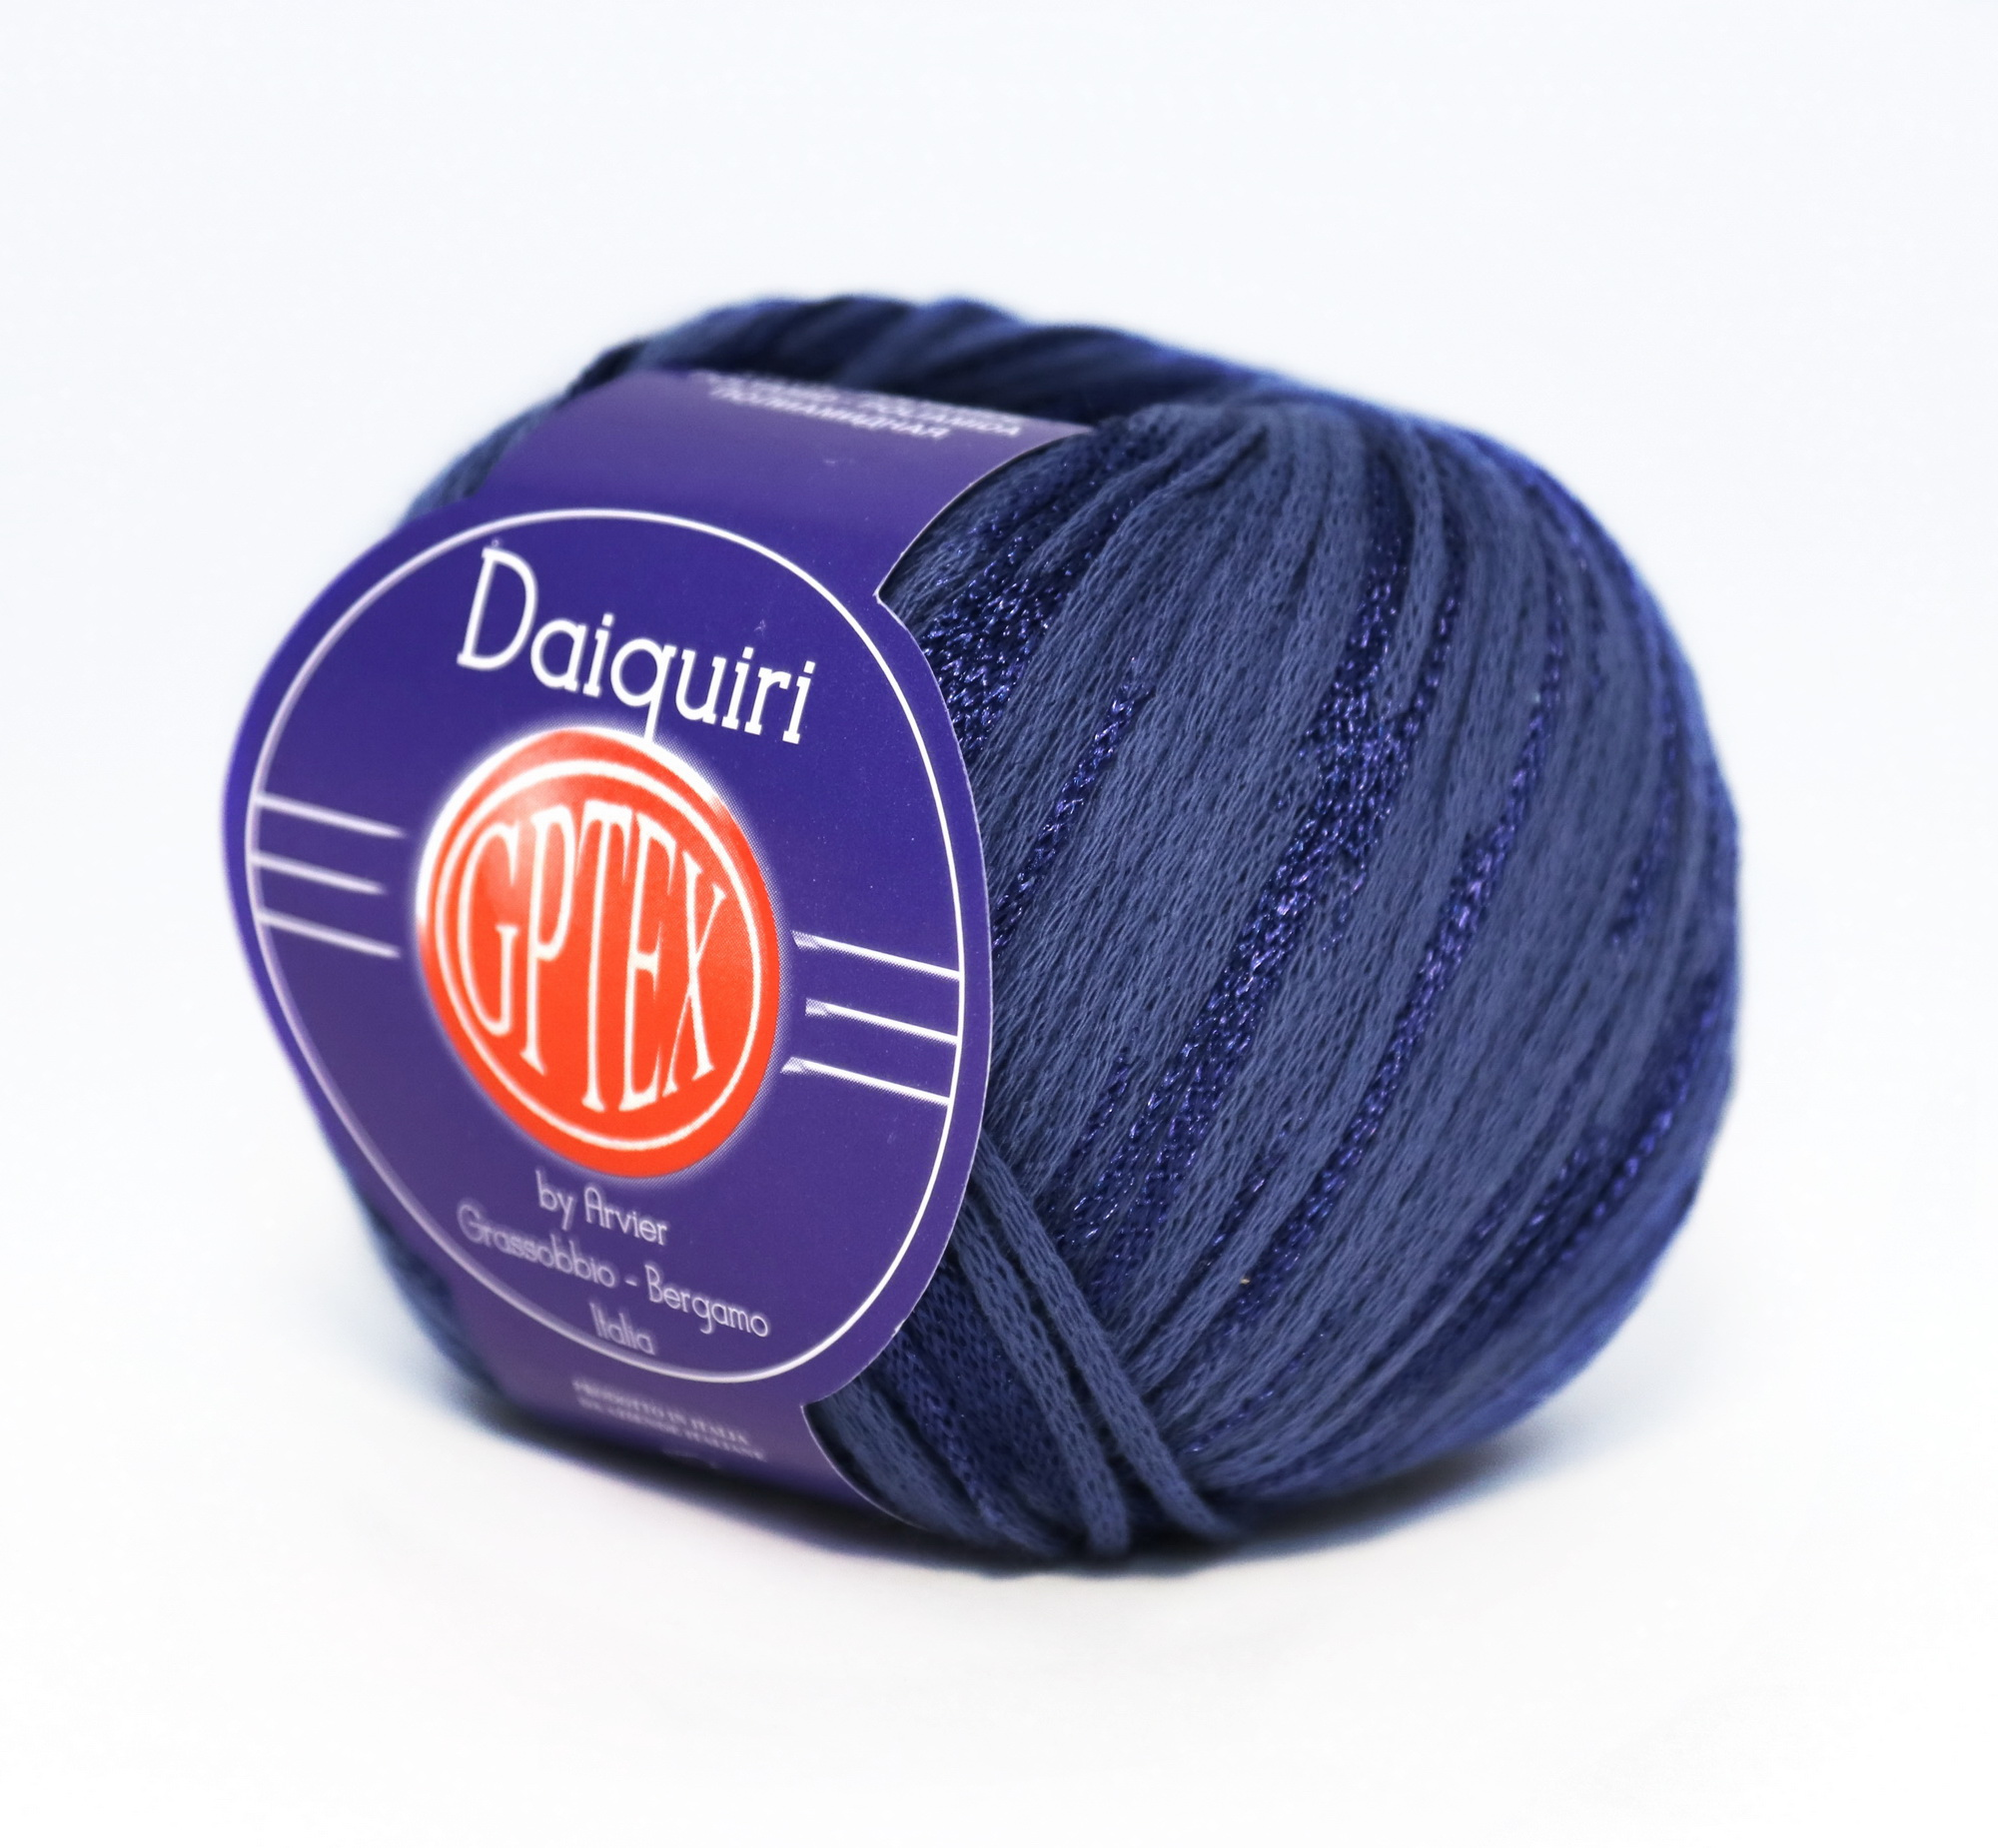 !!!NEW!!! Daiquiri